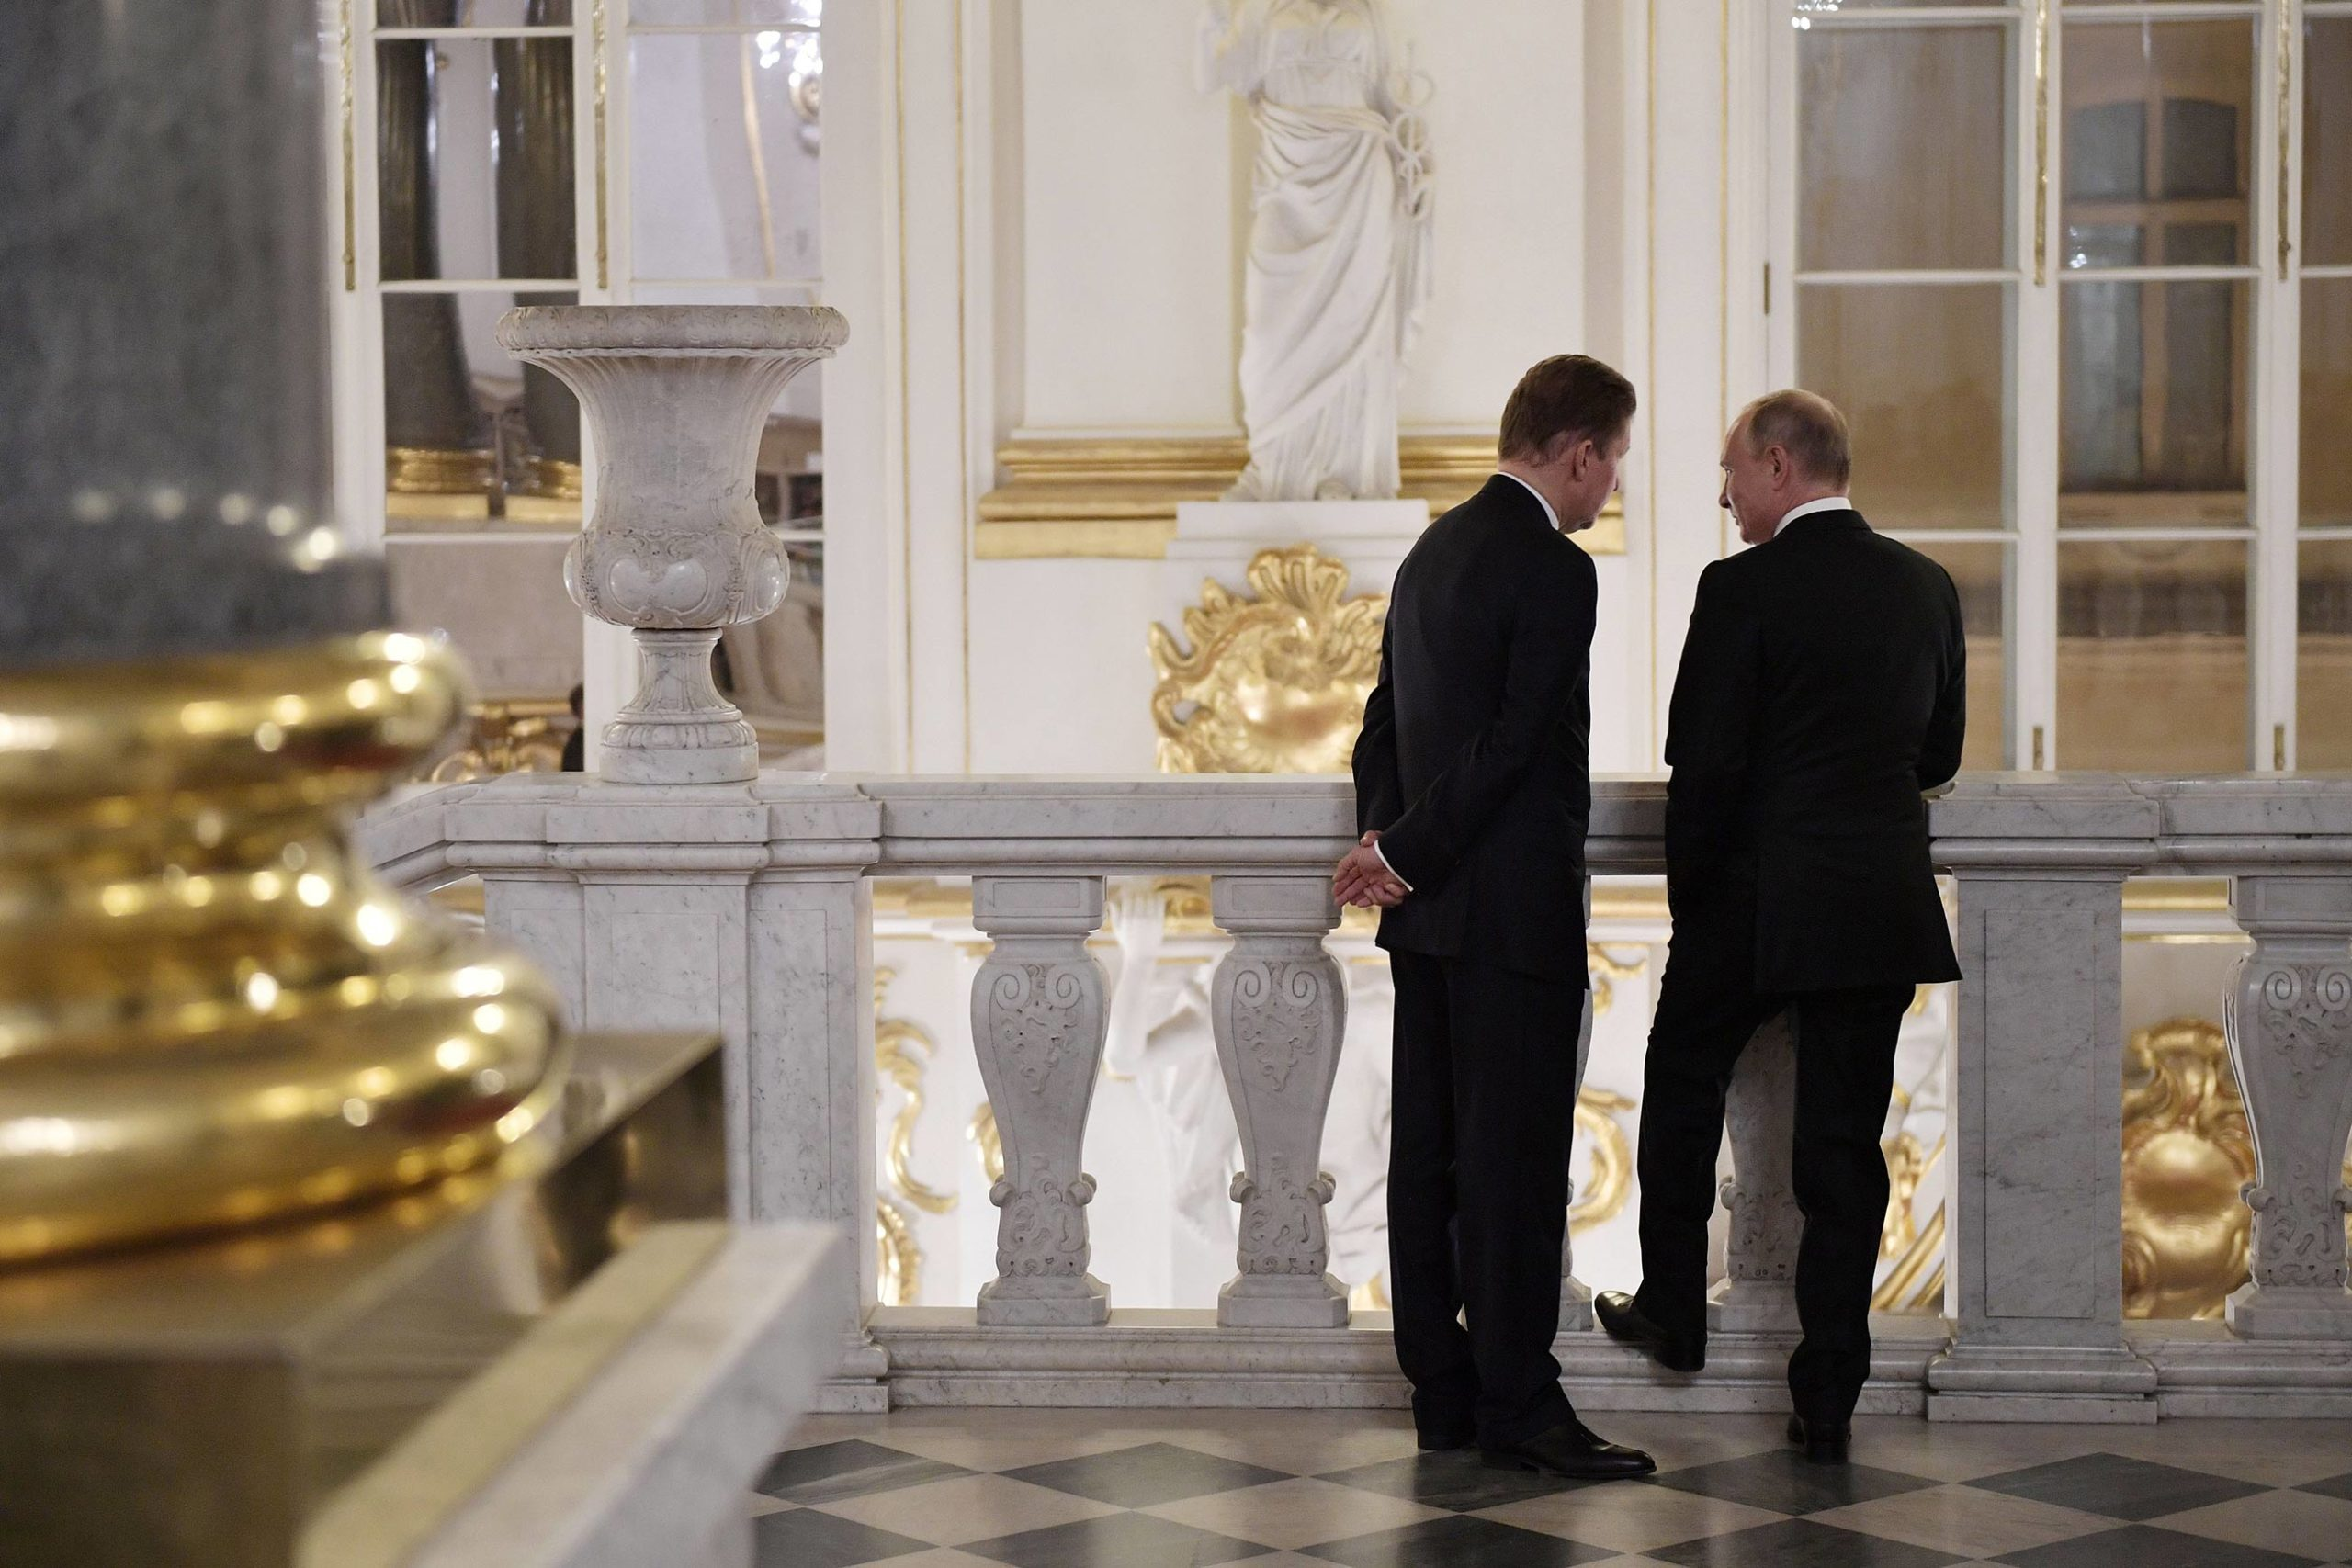 gettyimages 1045416346 scaled - <b>The Nord Stream-2 Deal Gives a Go-Ahead to Russia Despite Ukrainian Protests</b> - Заборона